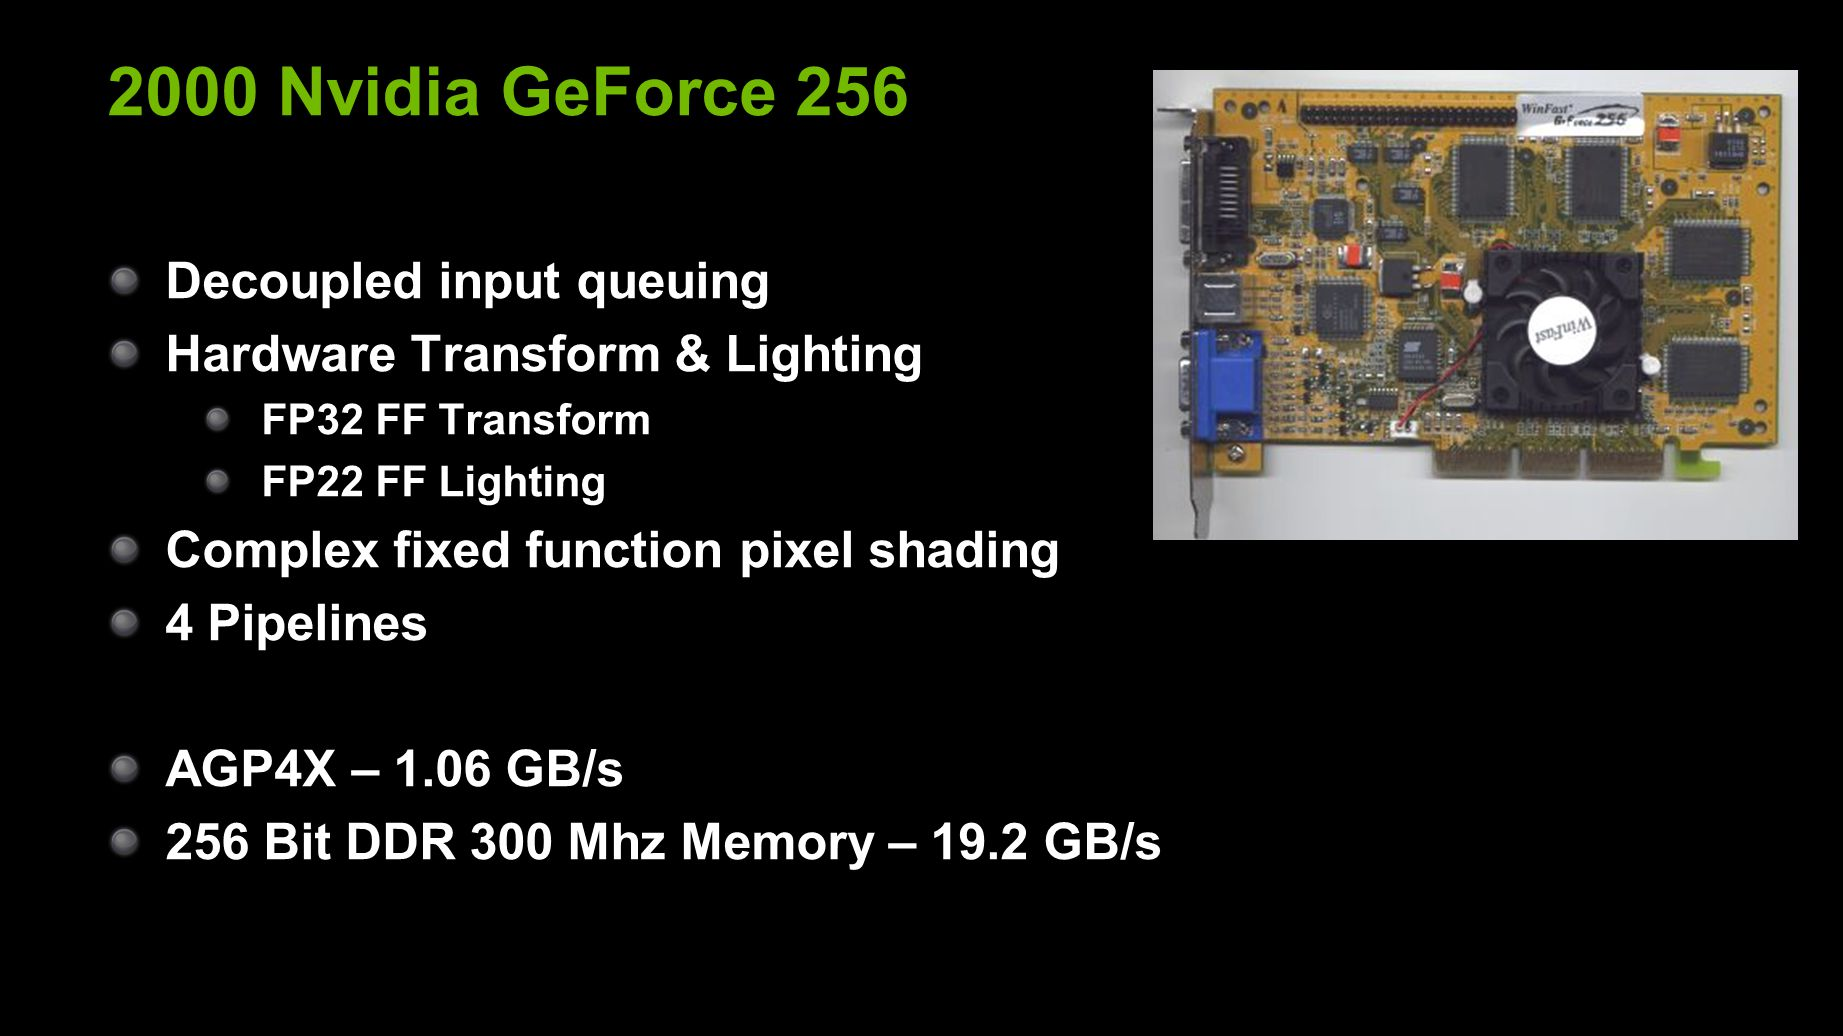 2000 Nvidia GeForce 256 Decoupled input queuing Hardware Transform & Lighting FP32 FF Transform FP22 FF Lighting Complex fixed function pixel shading 4 Pipelines AGP4X – 1.06 GB/s 256 Bit DDR 300 Mhz Memory – 19.2 GB/s